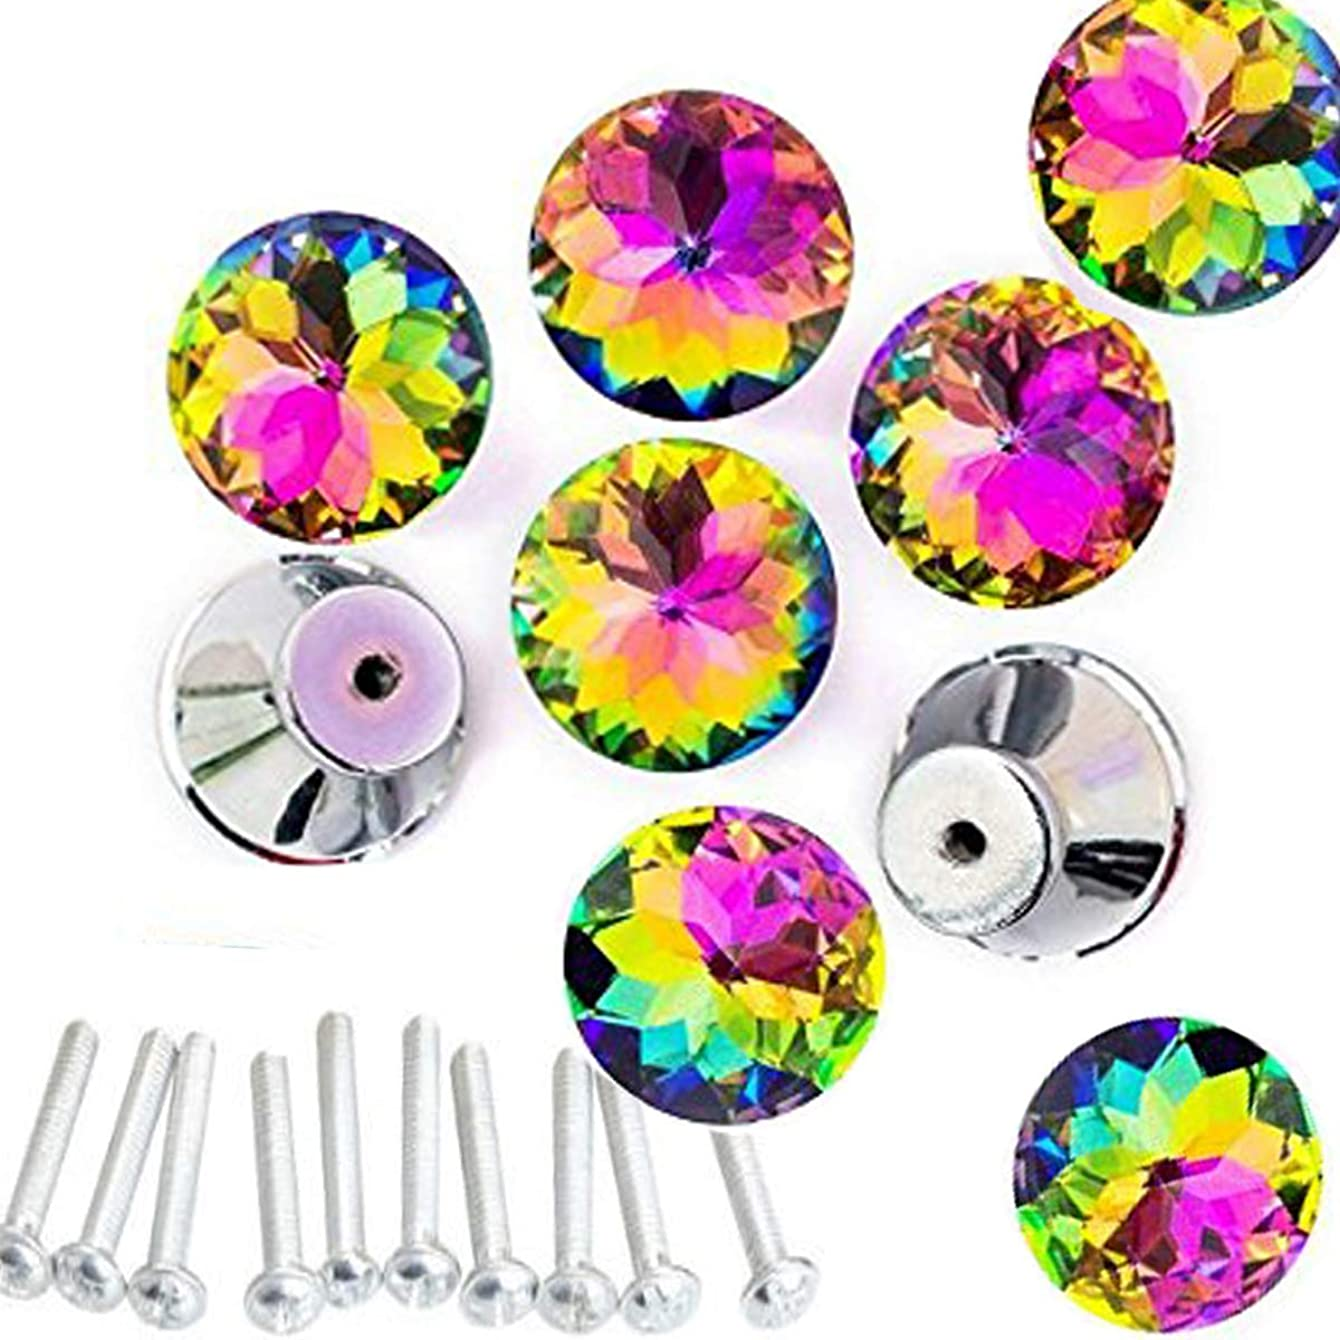 HOSL 10pcs Colorful Crystal Glass Cupboard Wardrobe Cabinet Drawer Knob Door Pull Handle